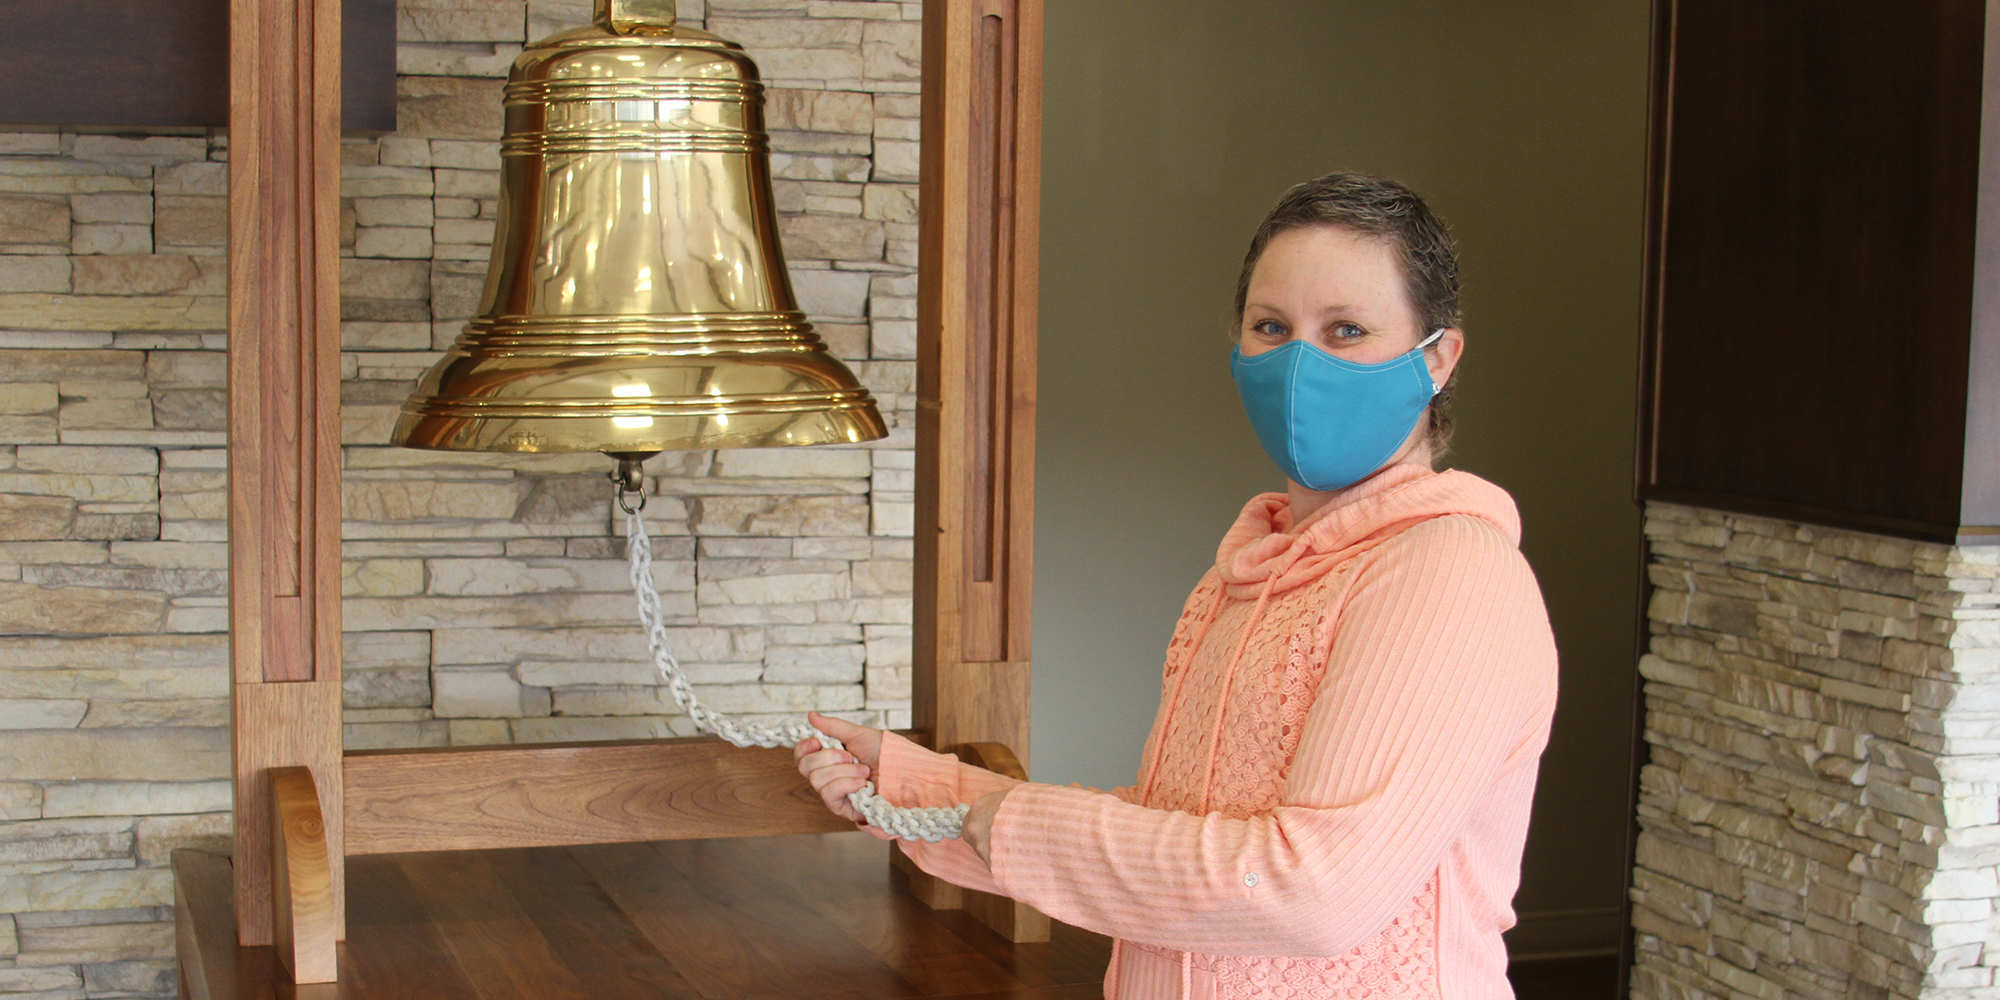 Felicia rings the bell after completing proton therapy for breast cancer